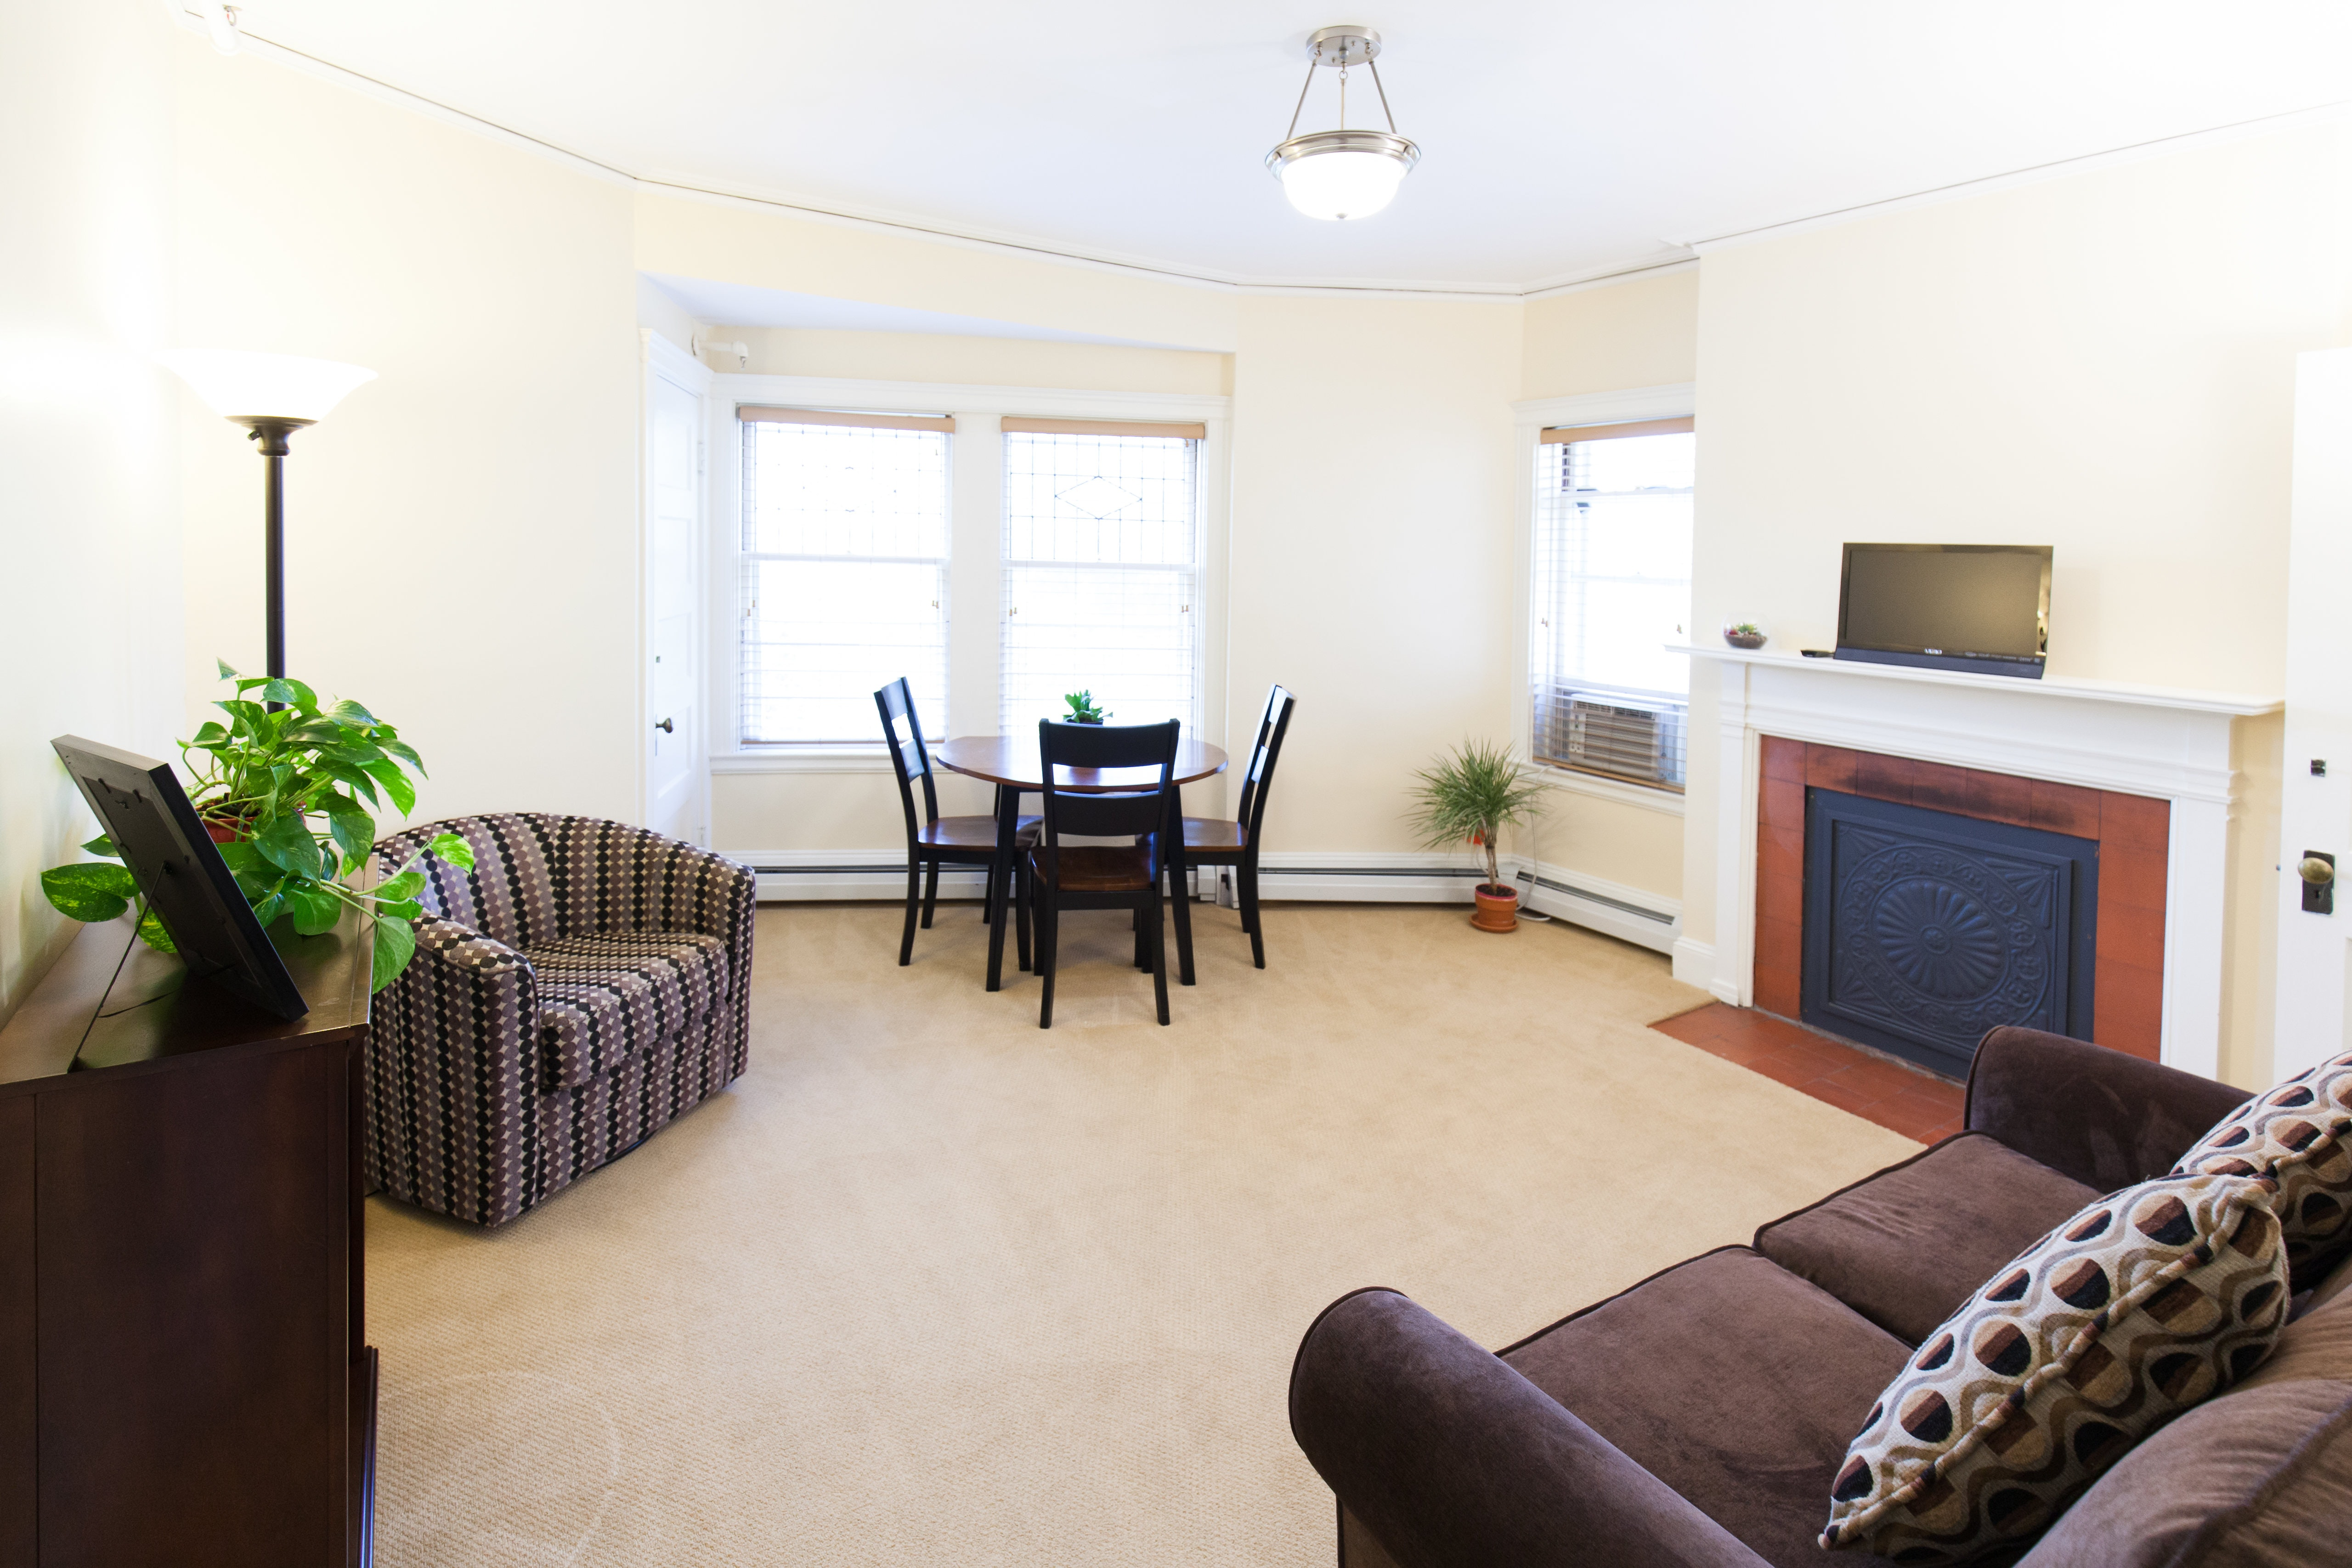 Living room of 83 Brattle Street two bedroom apartment with furnishings